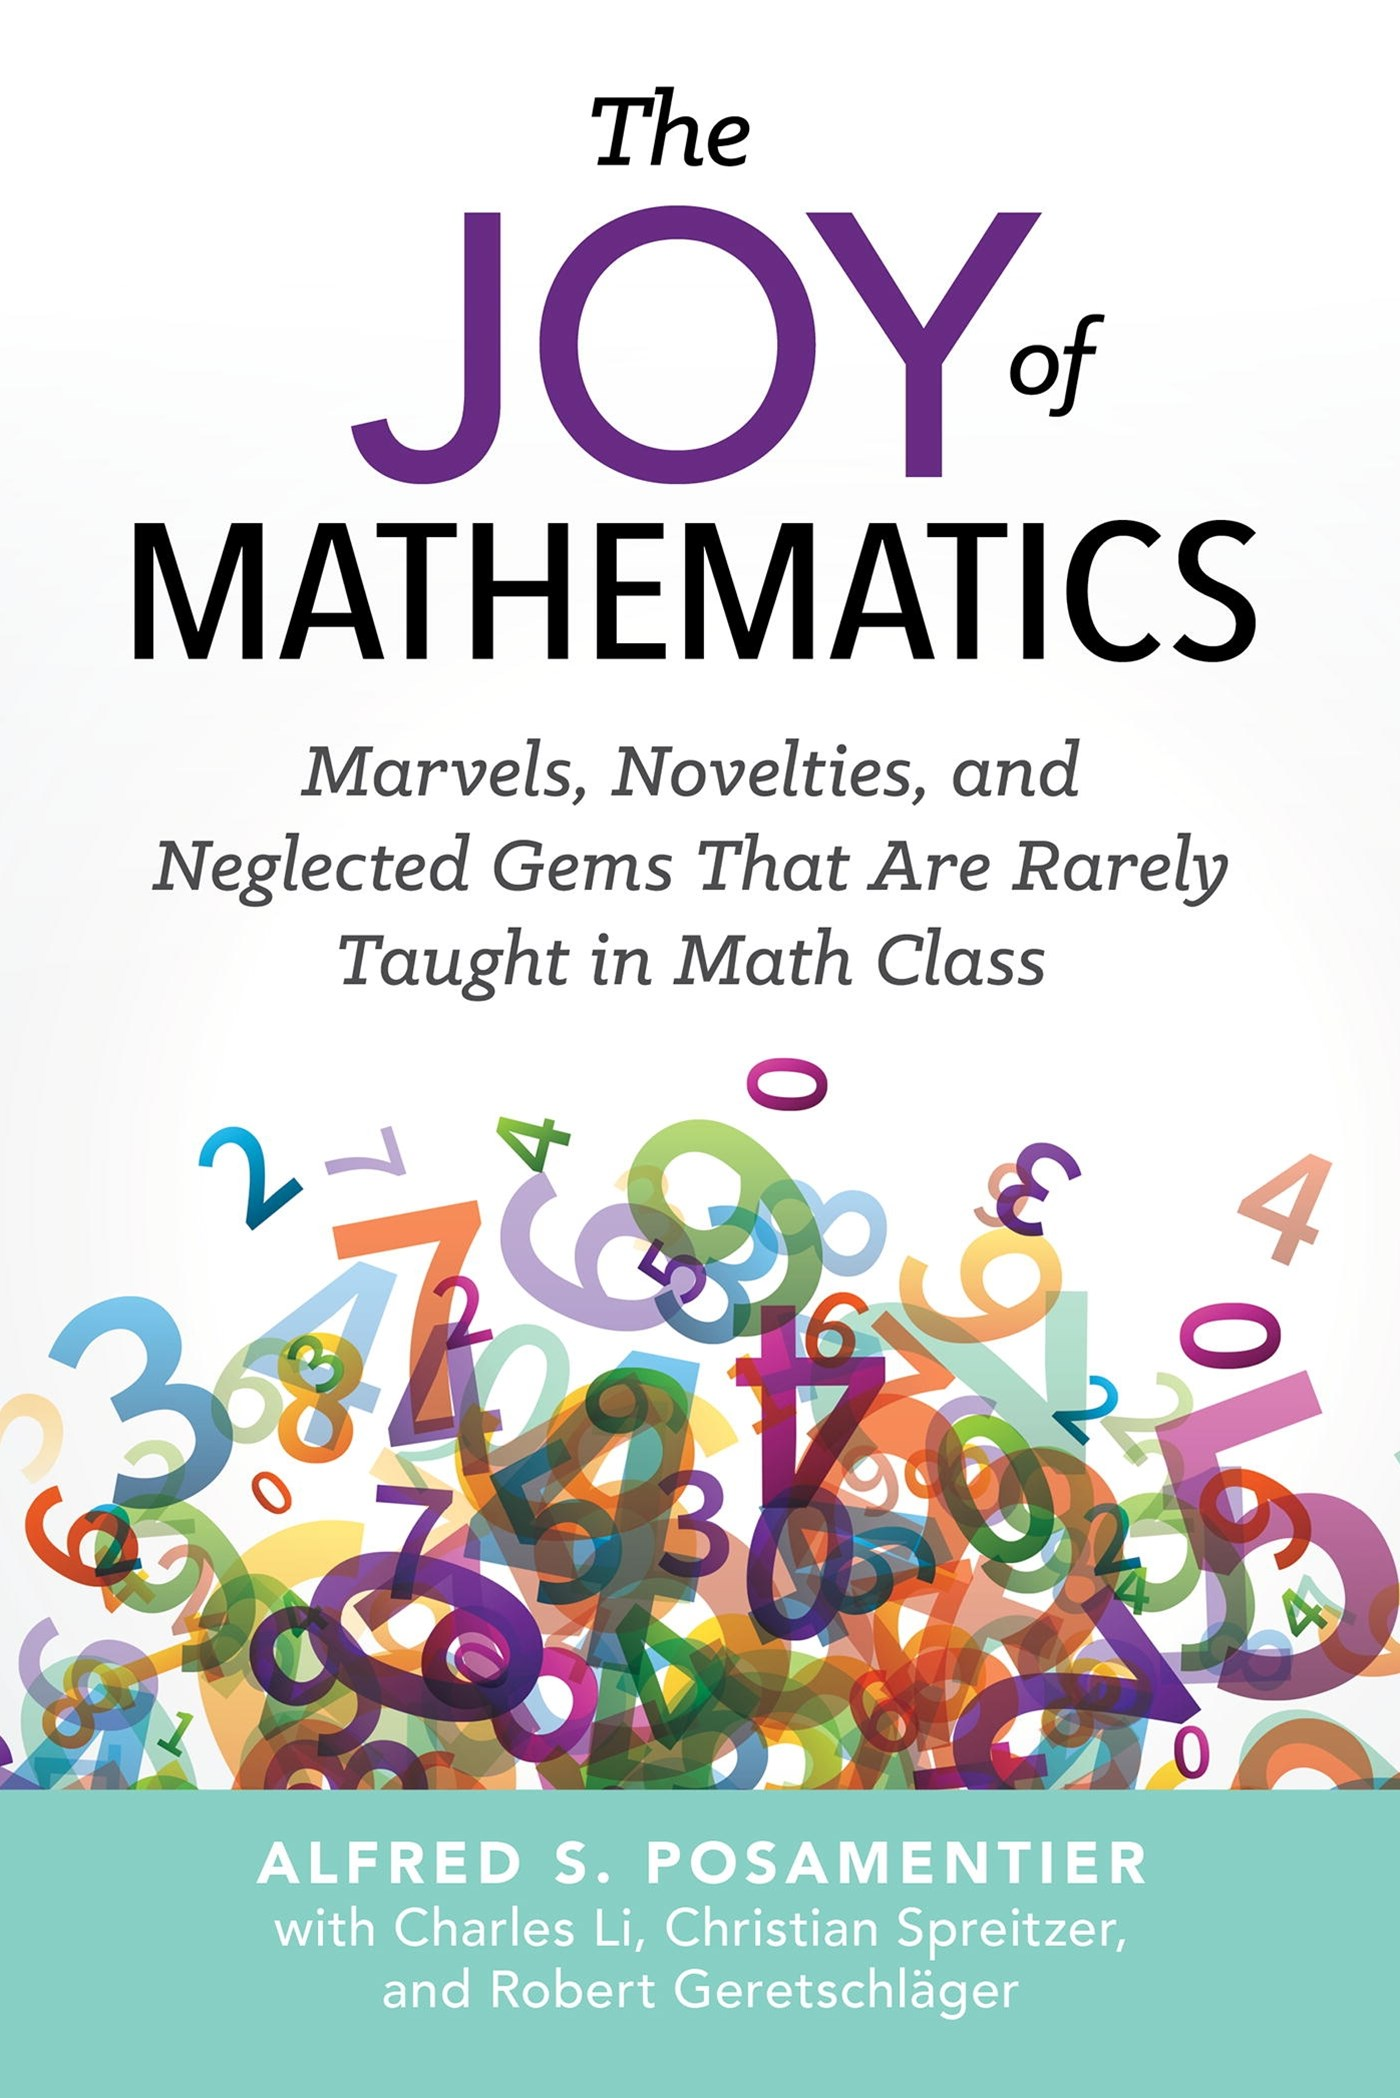 The Joy Of Mathematics: Marvels, Novelties, and Neglected Gems That Are Rarely Taught in Math Class